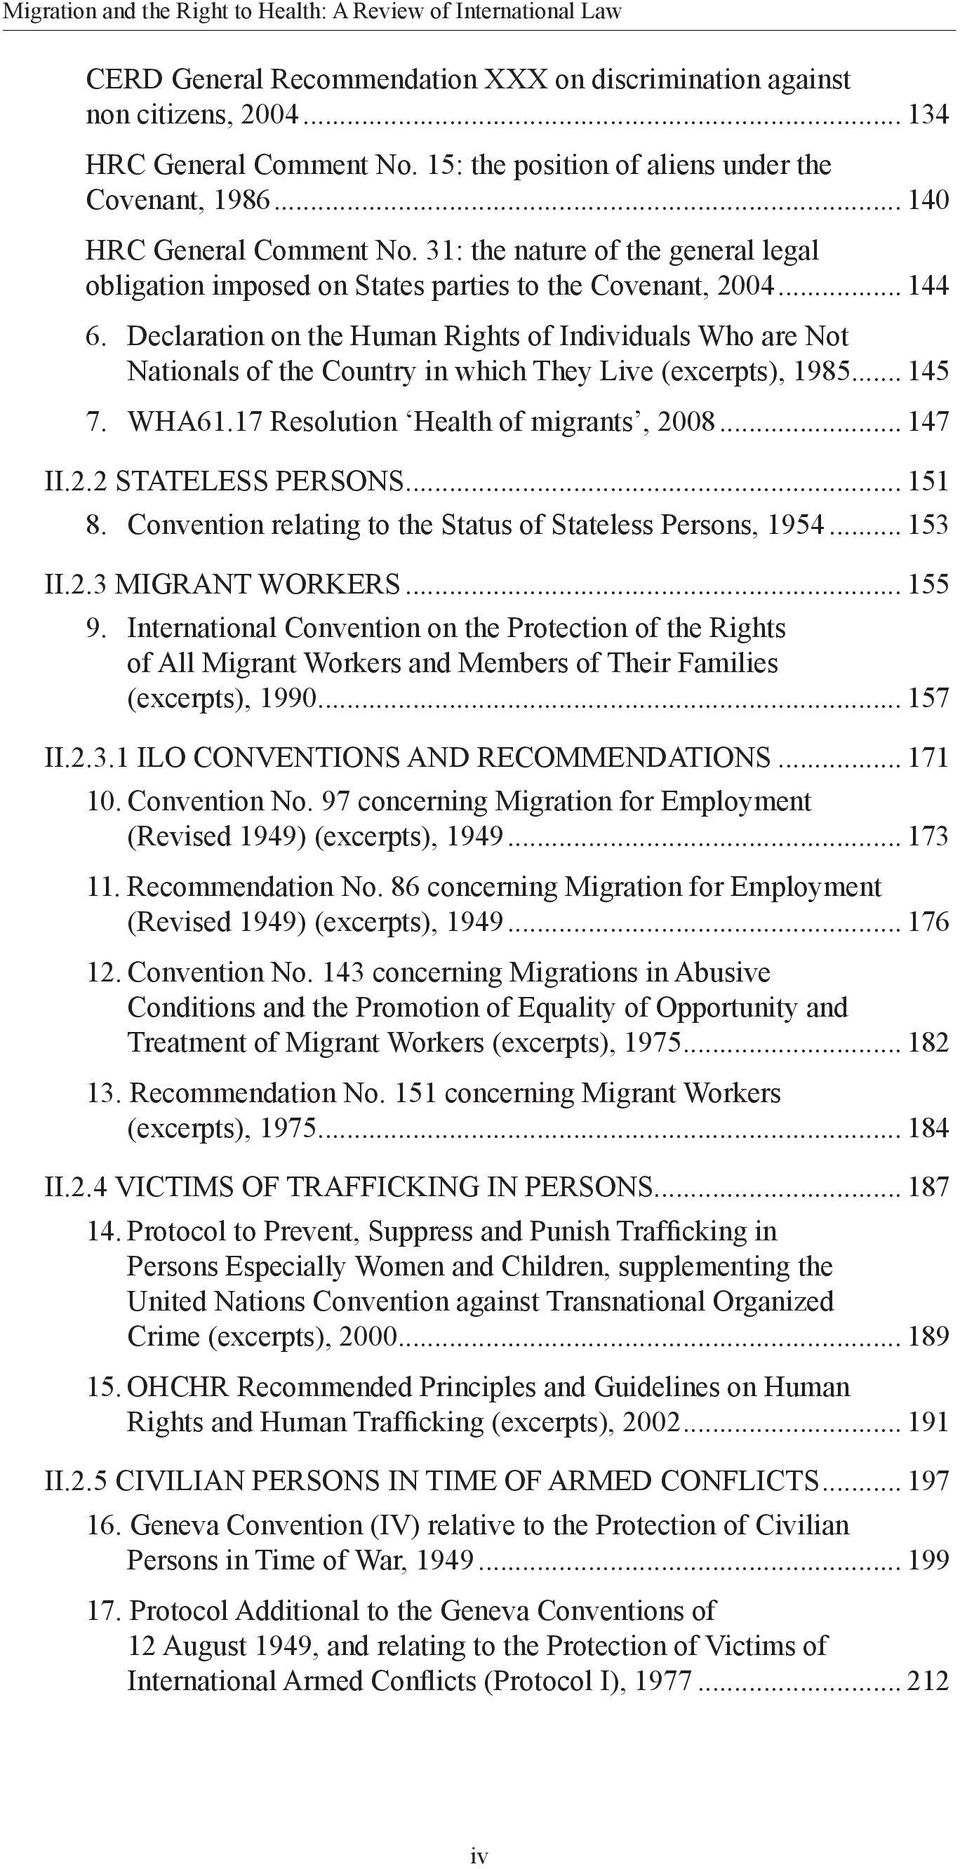 Declaration on the Human Rights of Individuals Who are Not Nationals of the Country in which They Live (excerpts), 1985... 145 7. WHA61.17 Resolution Health of migrants, 2008... 147 II.2.2 STATELESS PERSONS.